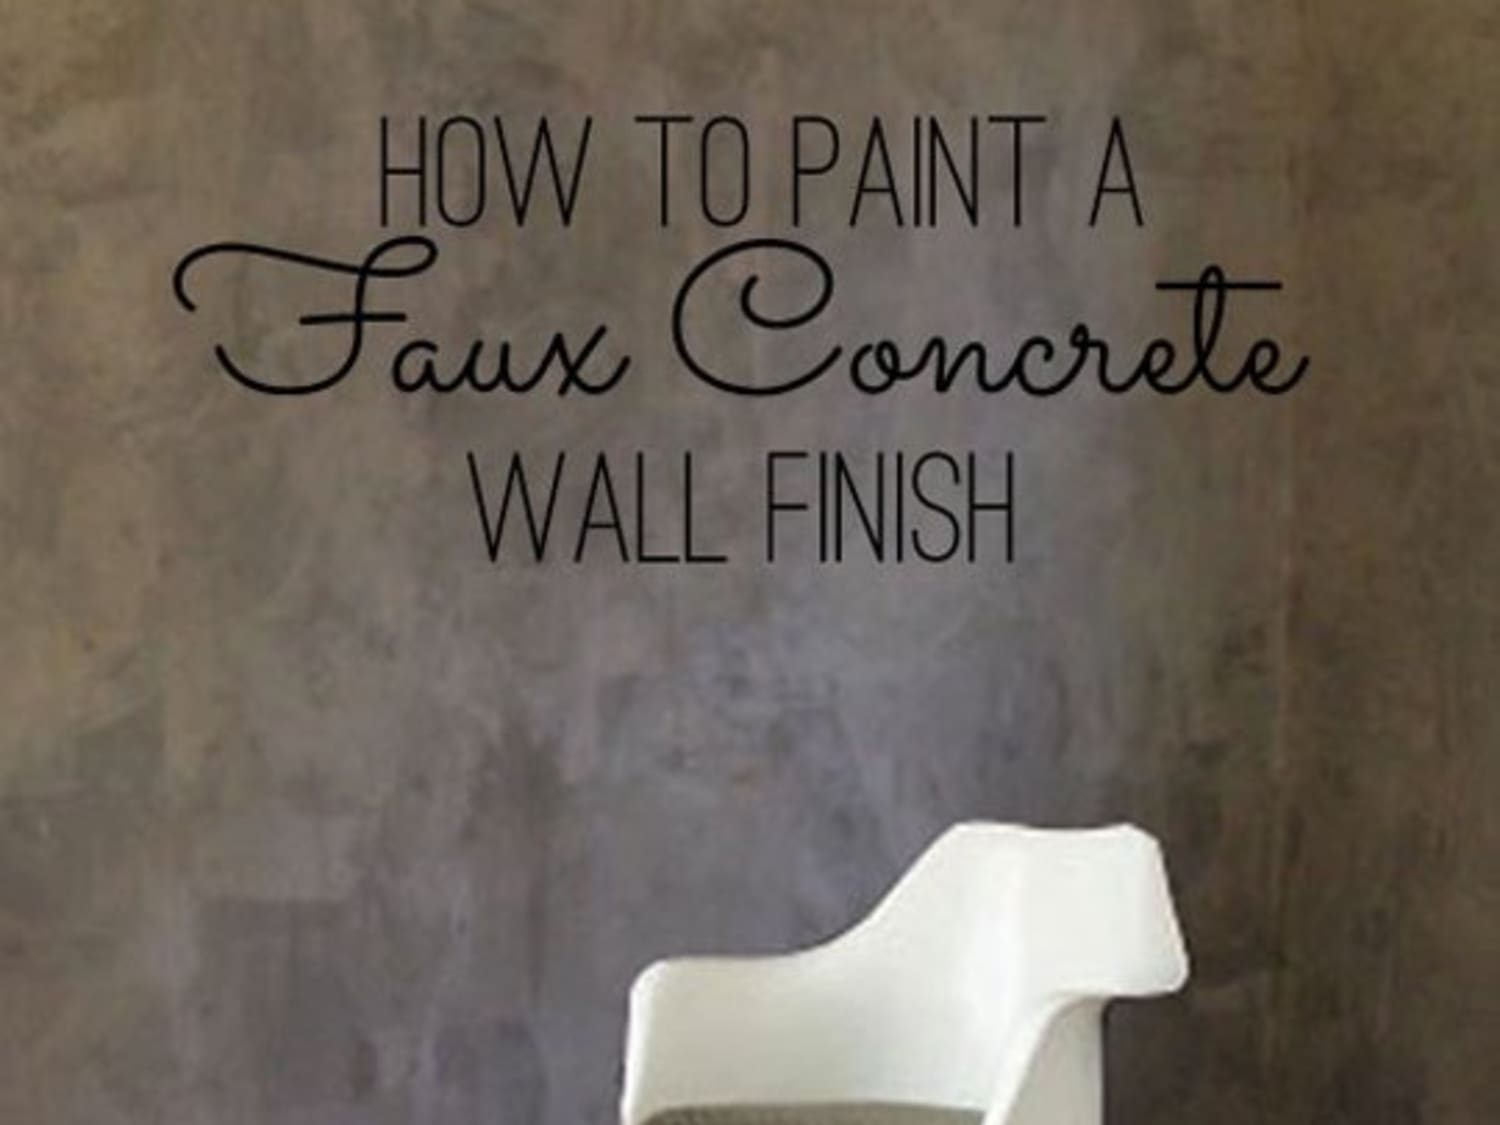 DIY Home Decor: How To Paint a Faux Concrete Wall Finish